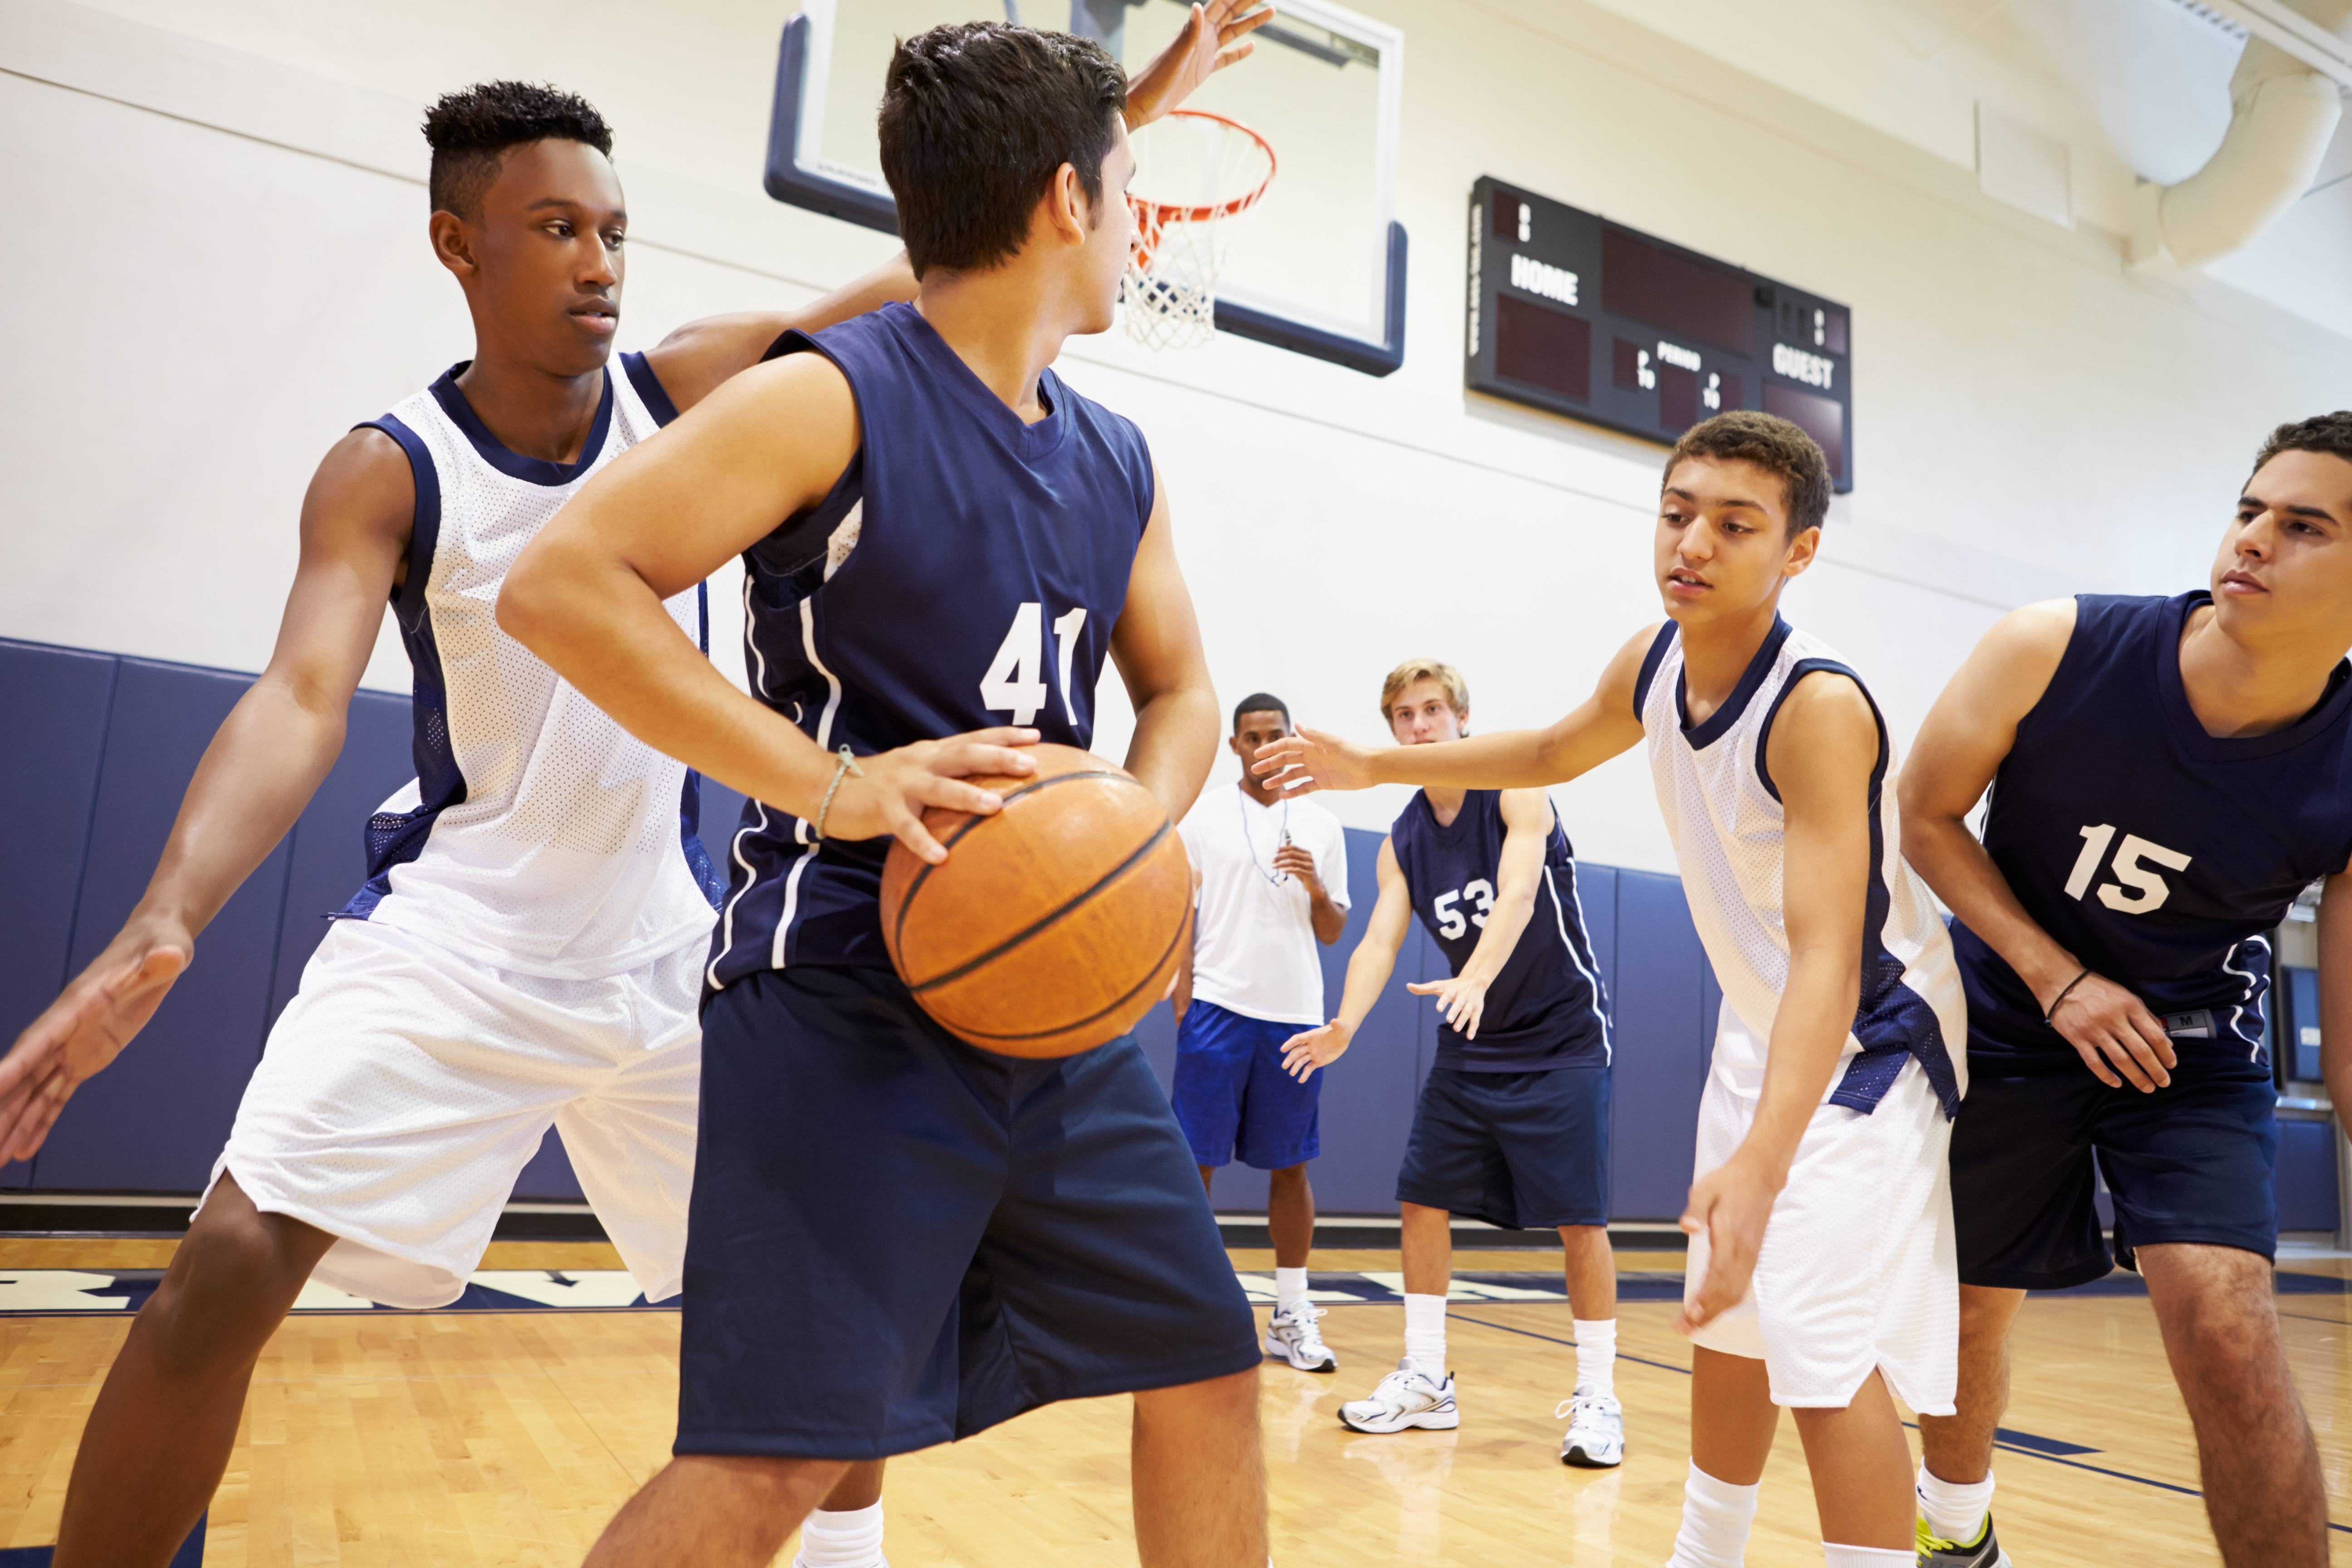 male high school basketball players playing game